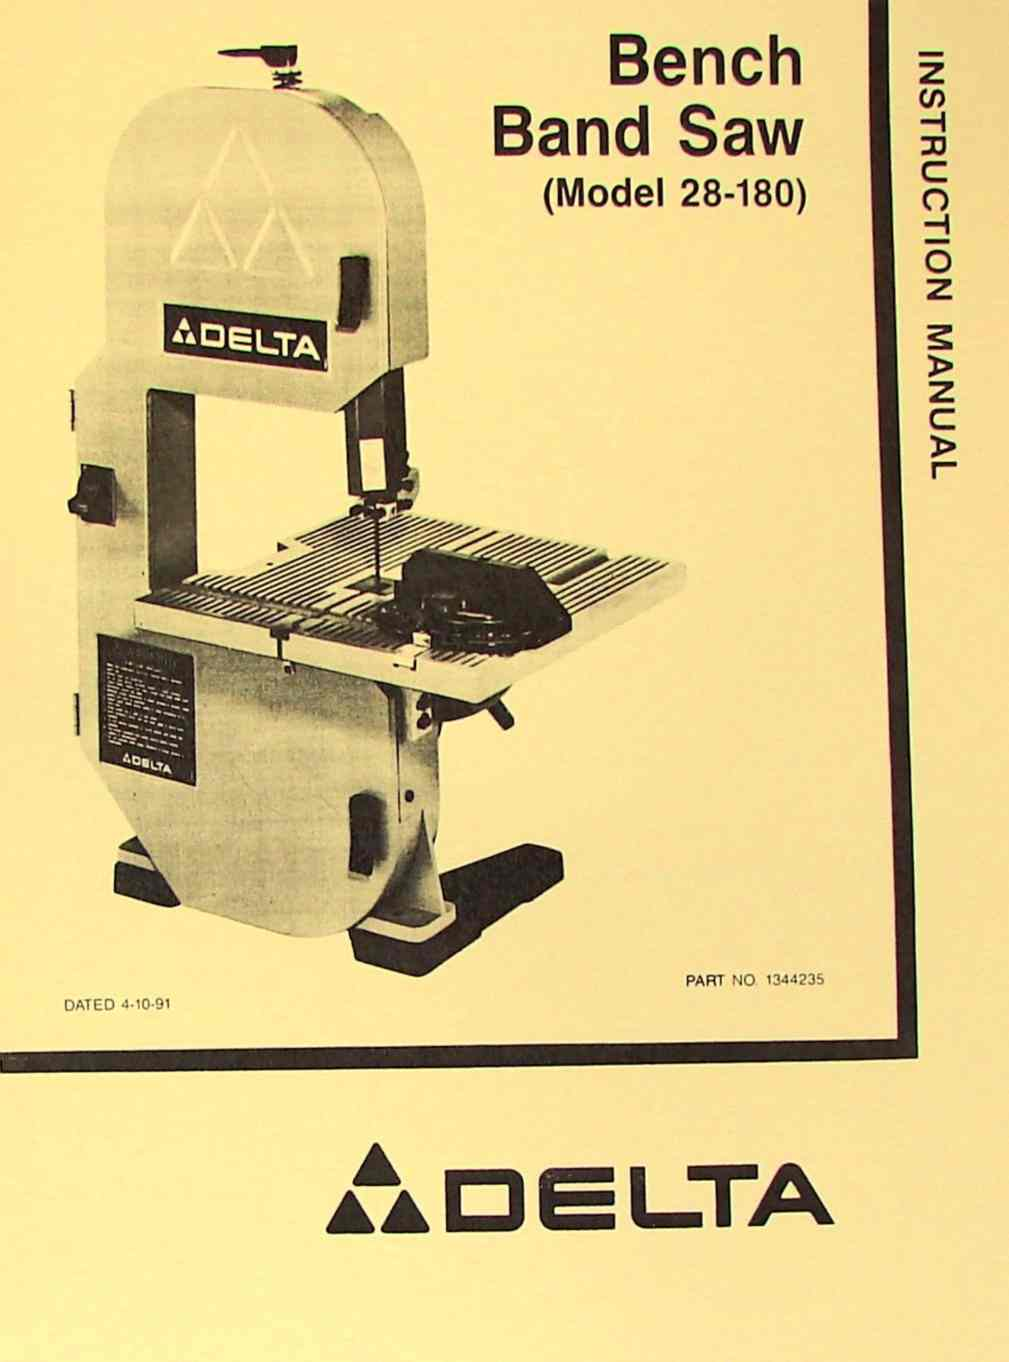 Delta 28 180 Bench Band Saw Instruction Parts Manual Ozark Tool Manuals Books